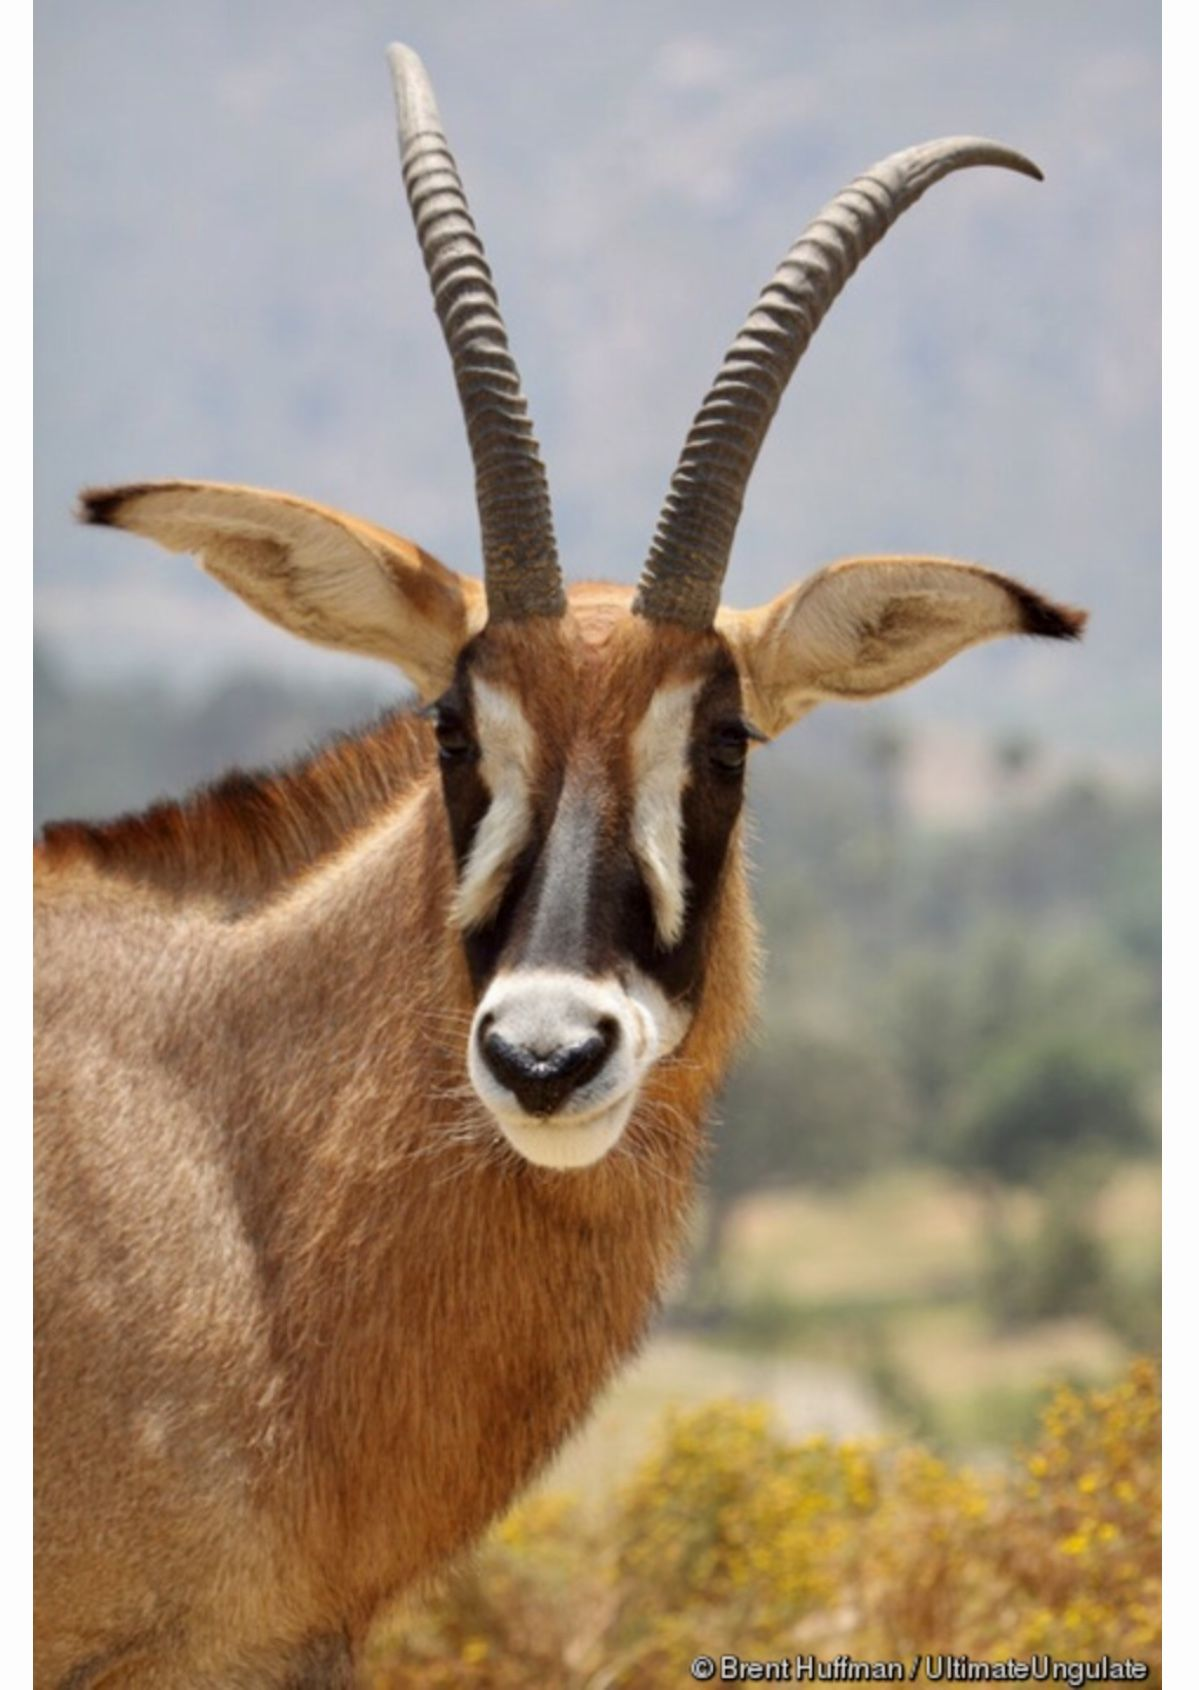 Roan antelope (Hippotragus equinus), the largest antelope